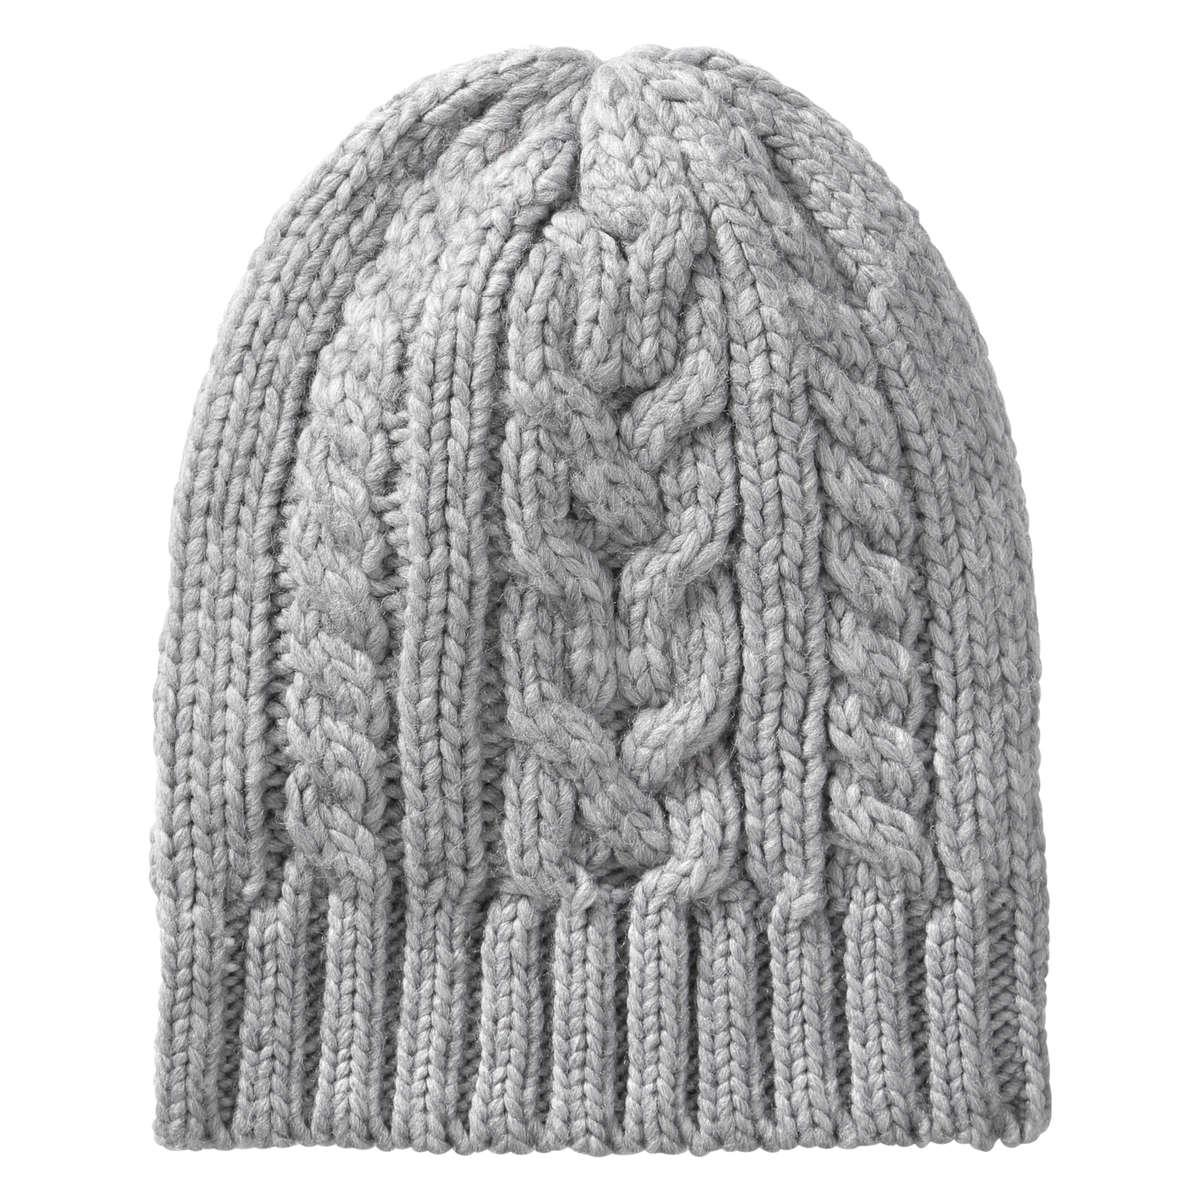 889422c683a Lyst - Joe Fresh Men s Cable Knit Hat in Gray for Men